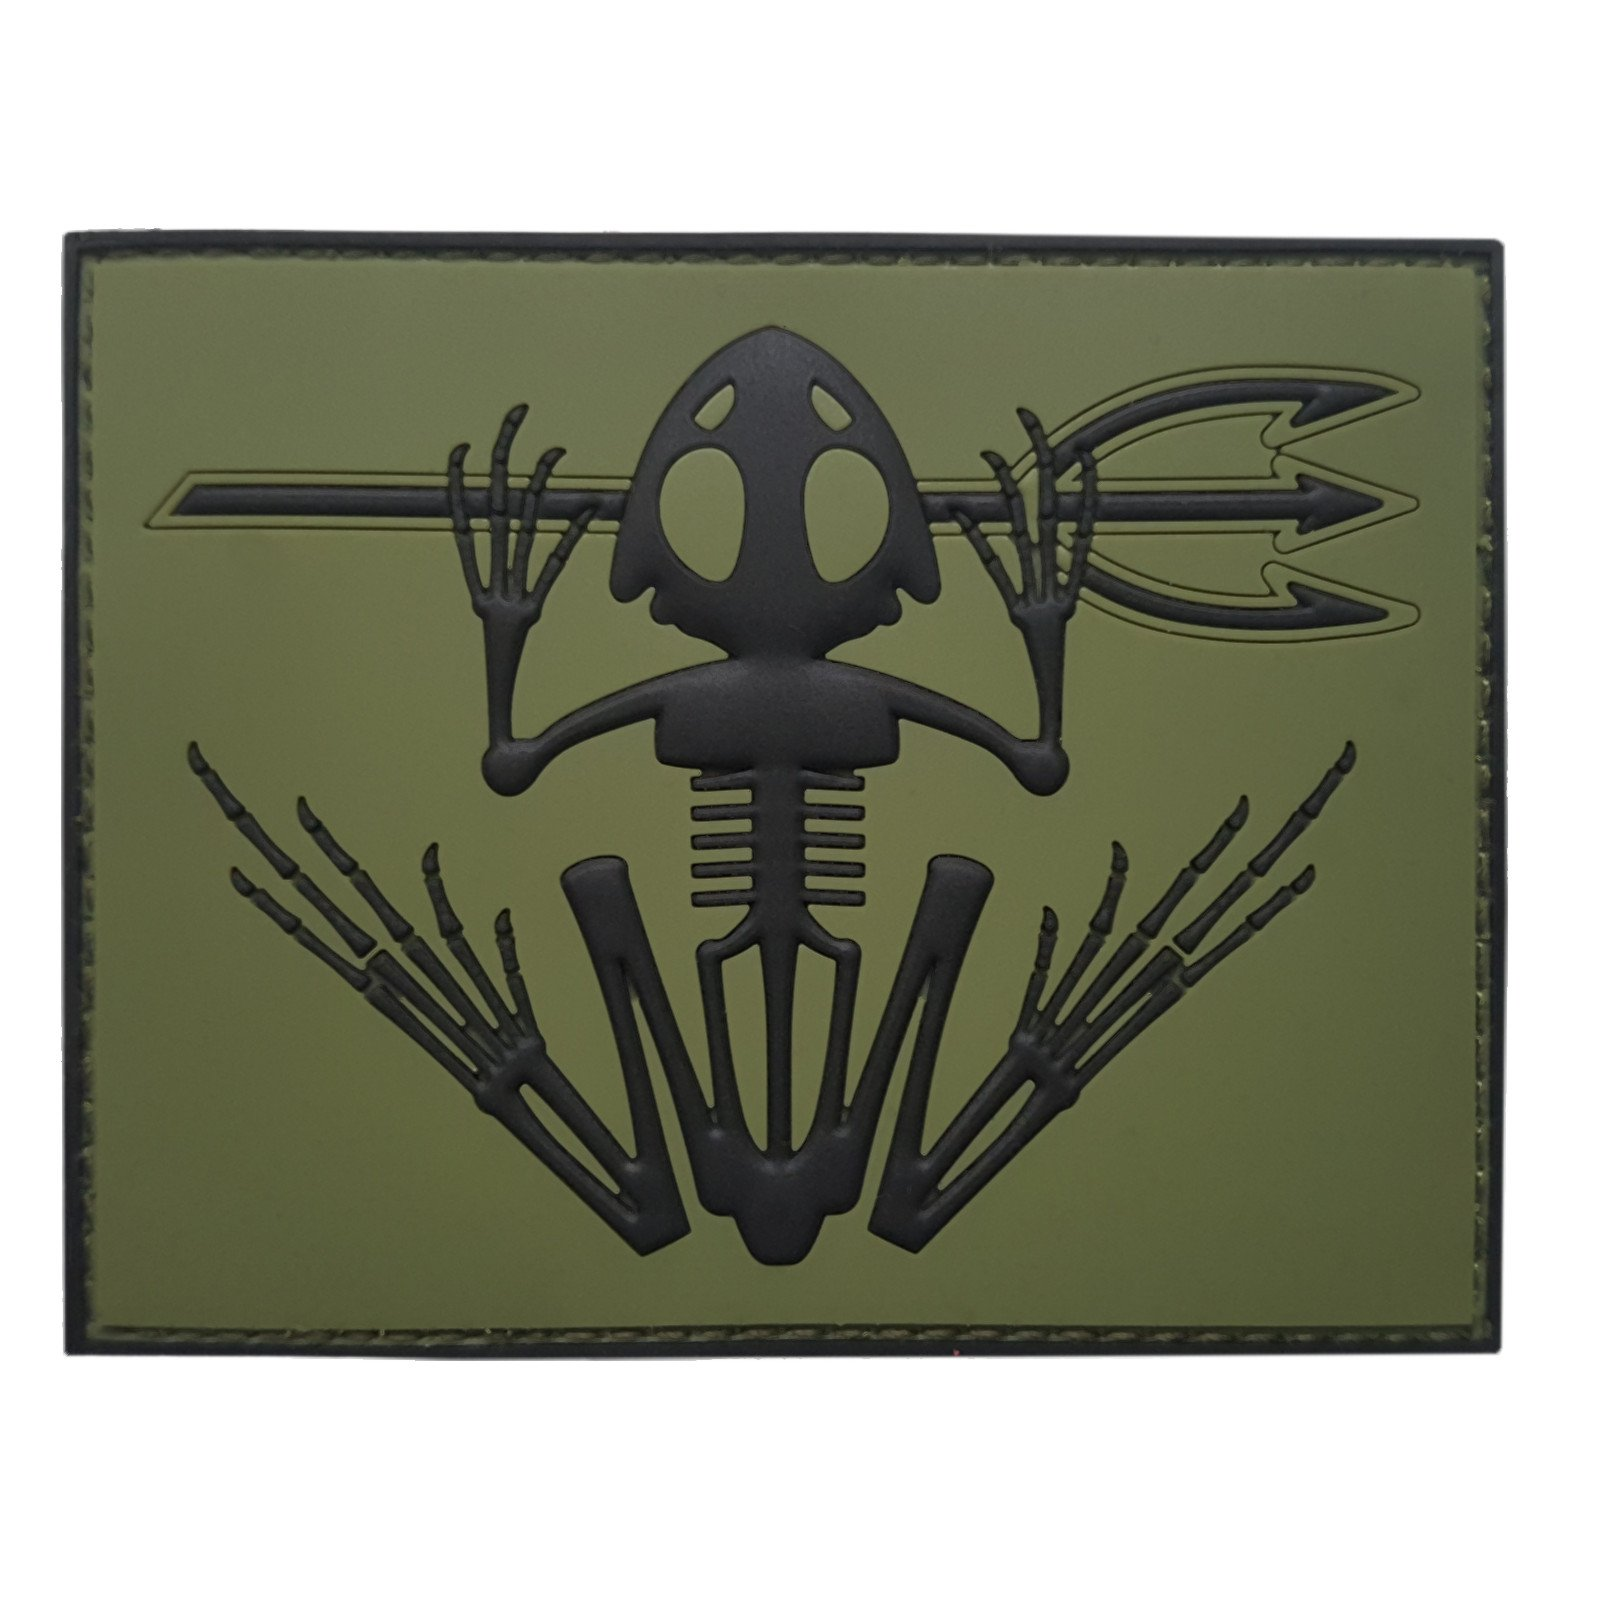 cheap navy seals patch find navy seals patch deals on line at